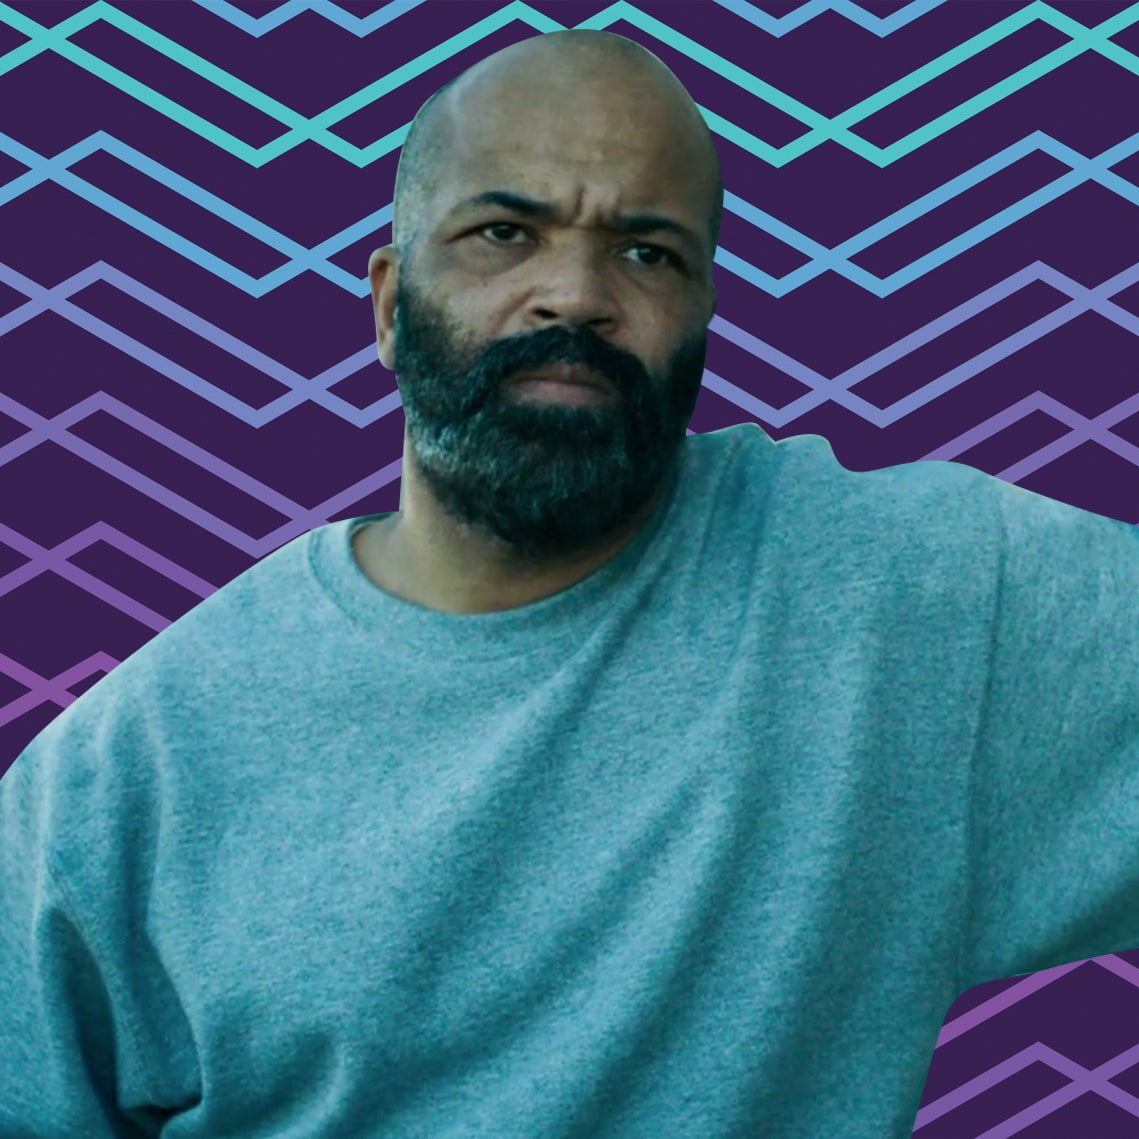 Jeffrey's Wright's Latest Film, 'O.G.', Shows The Lasting Effects Of Crime And A Flawed System